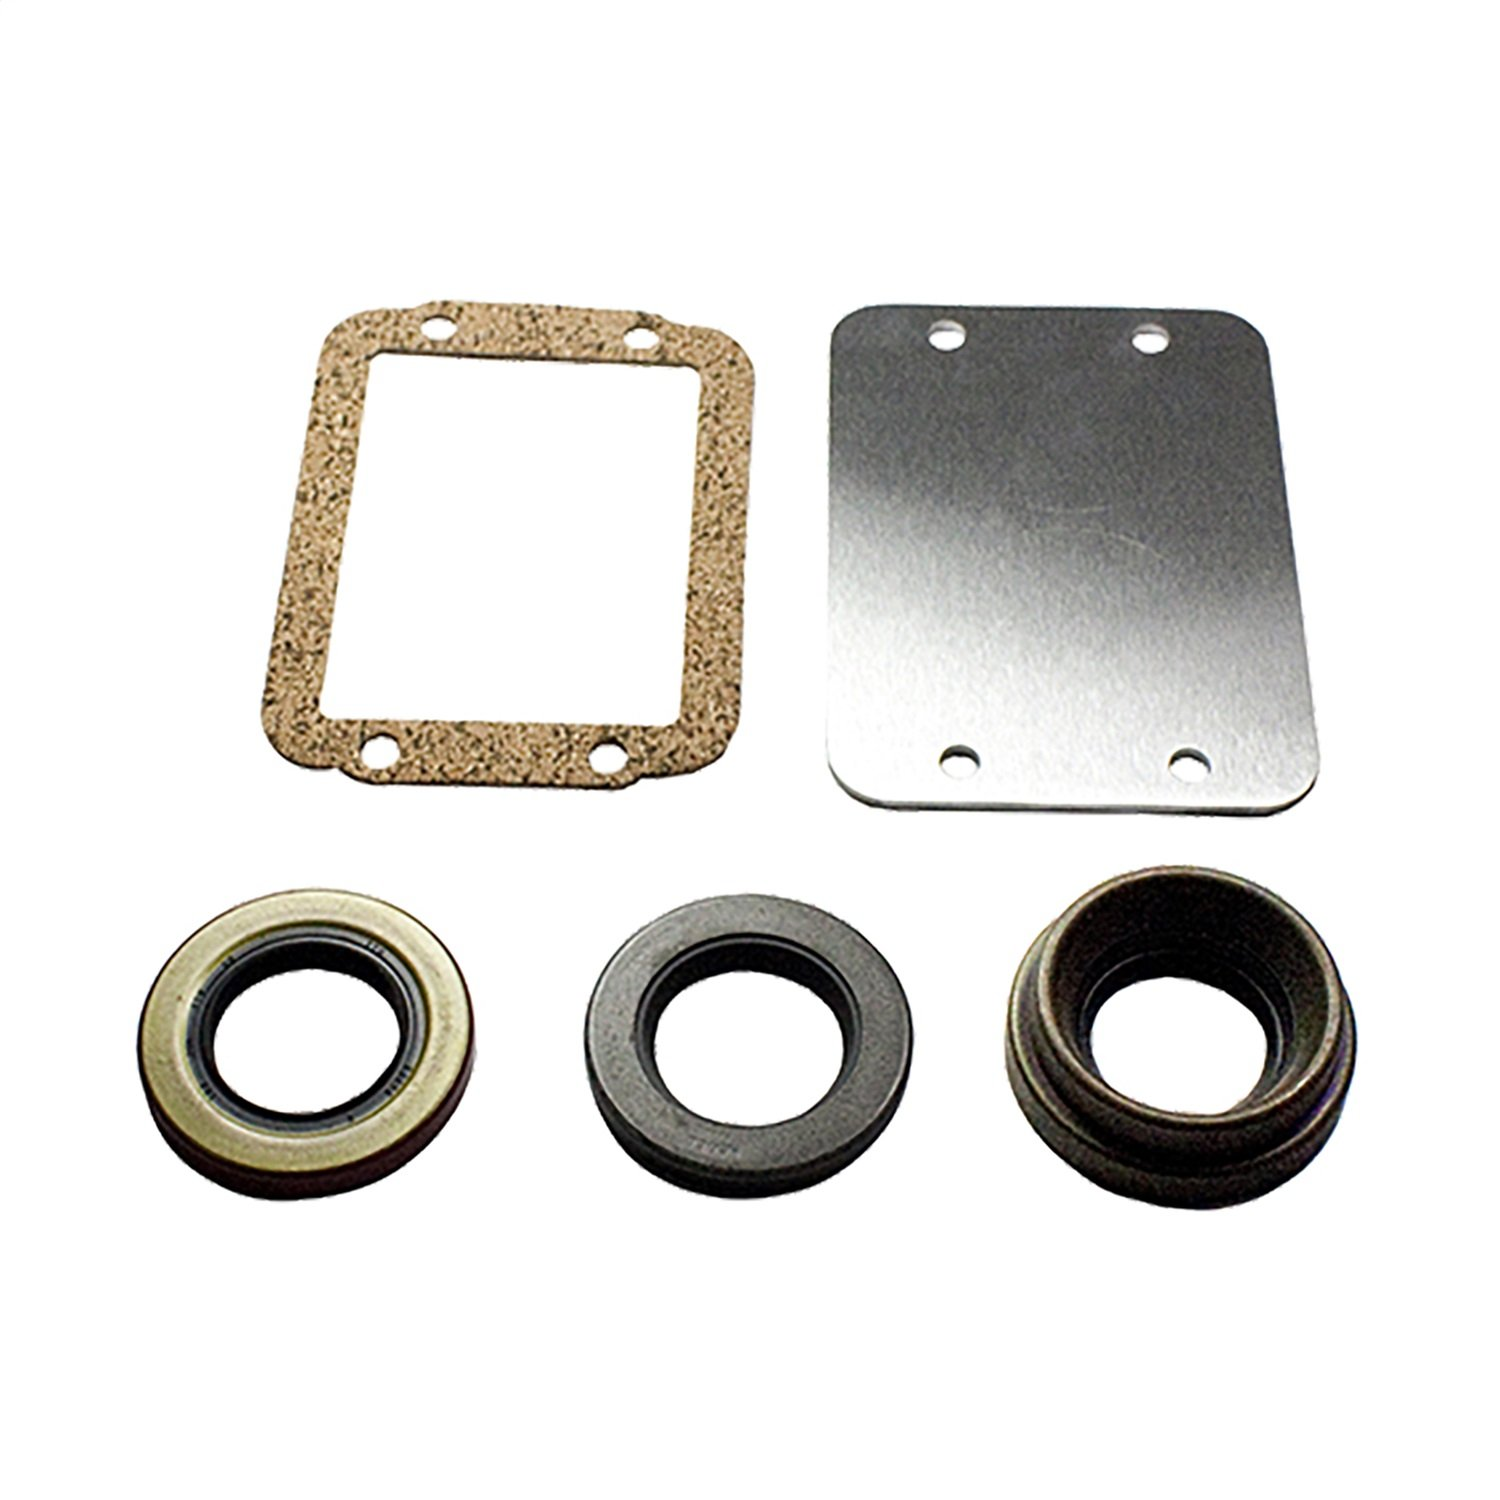 Yukon Gear & Axle (YA W39147-KIT) Block-Off Kit for Dana 30 Differential by Yukon Gear